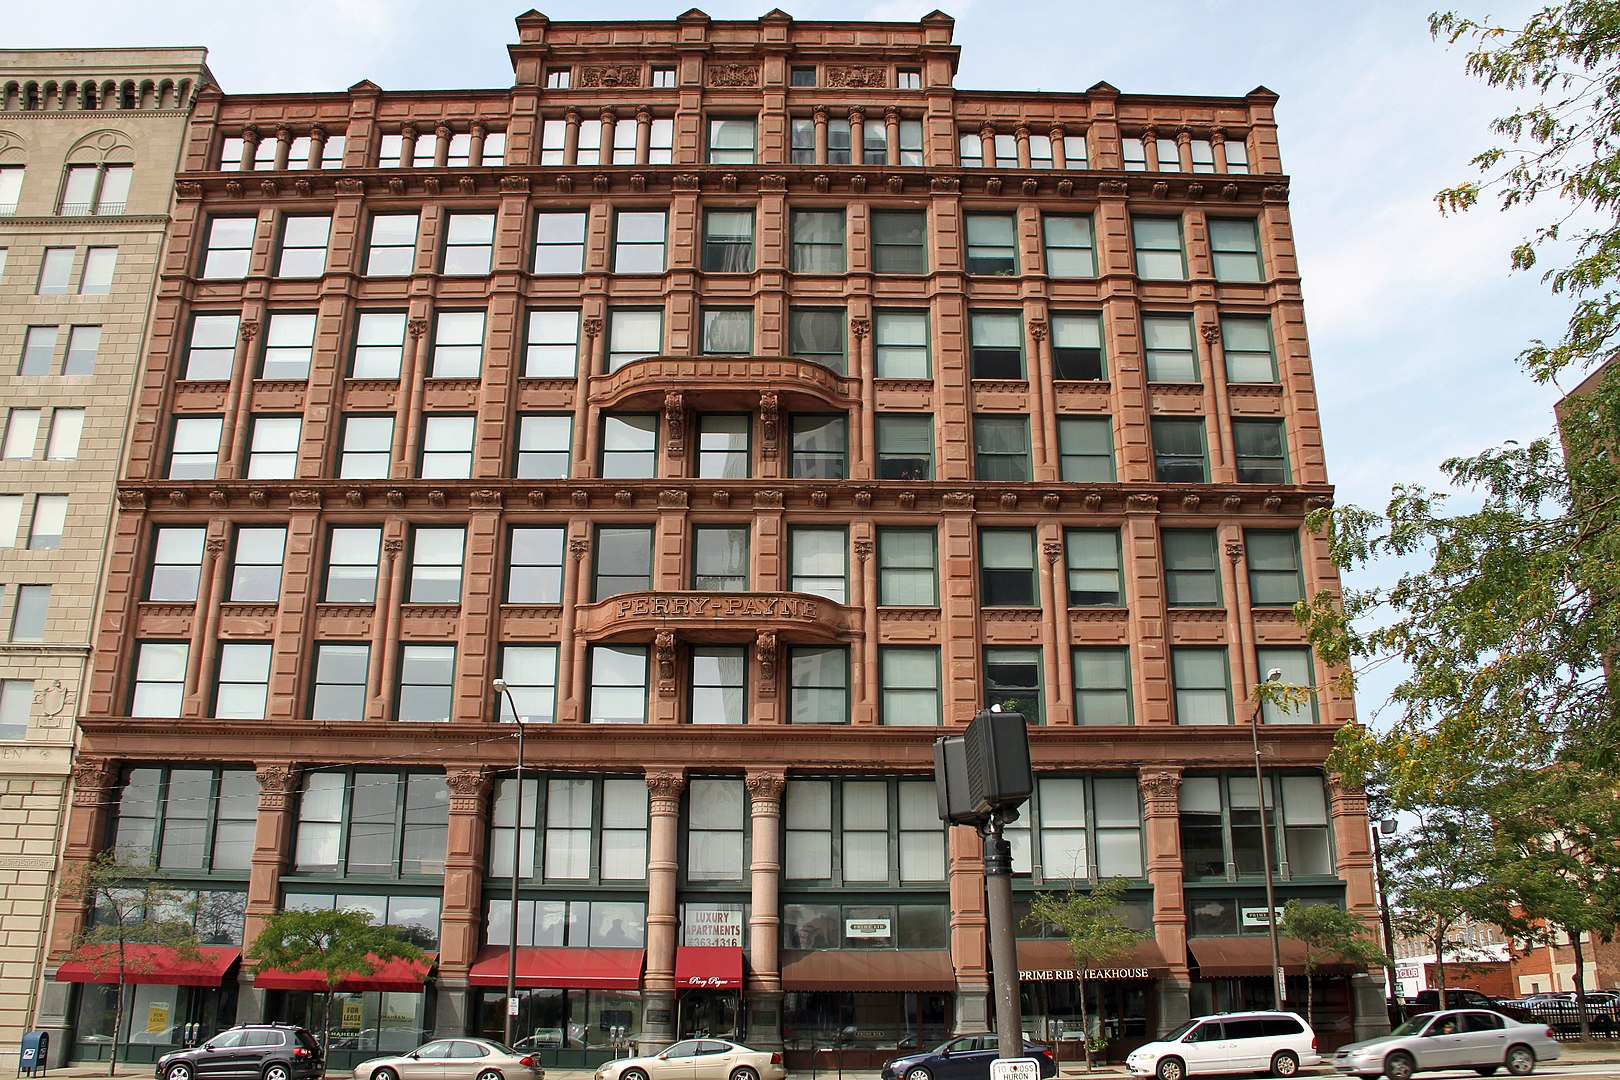 Historic Perry-Payne Building in Cleveland (now: Perry Payne Apartments)